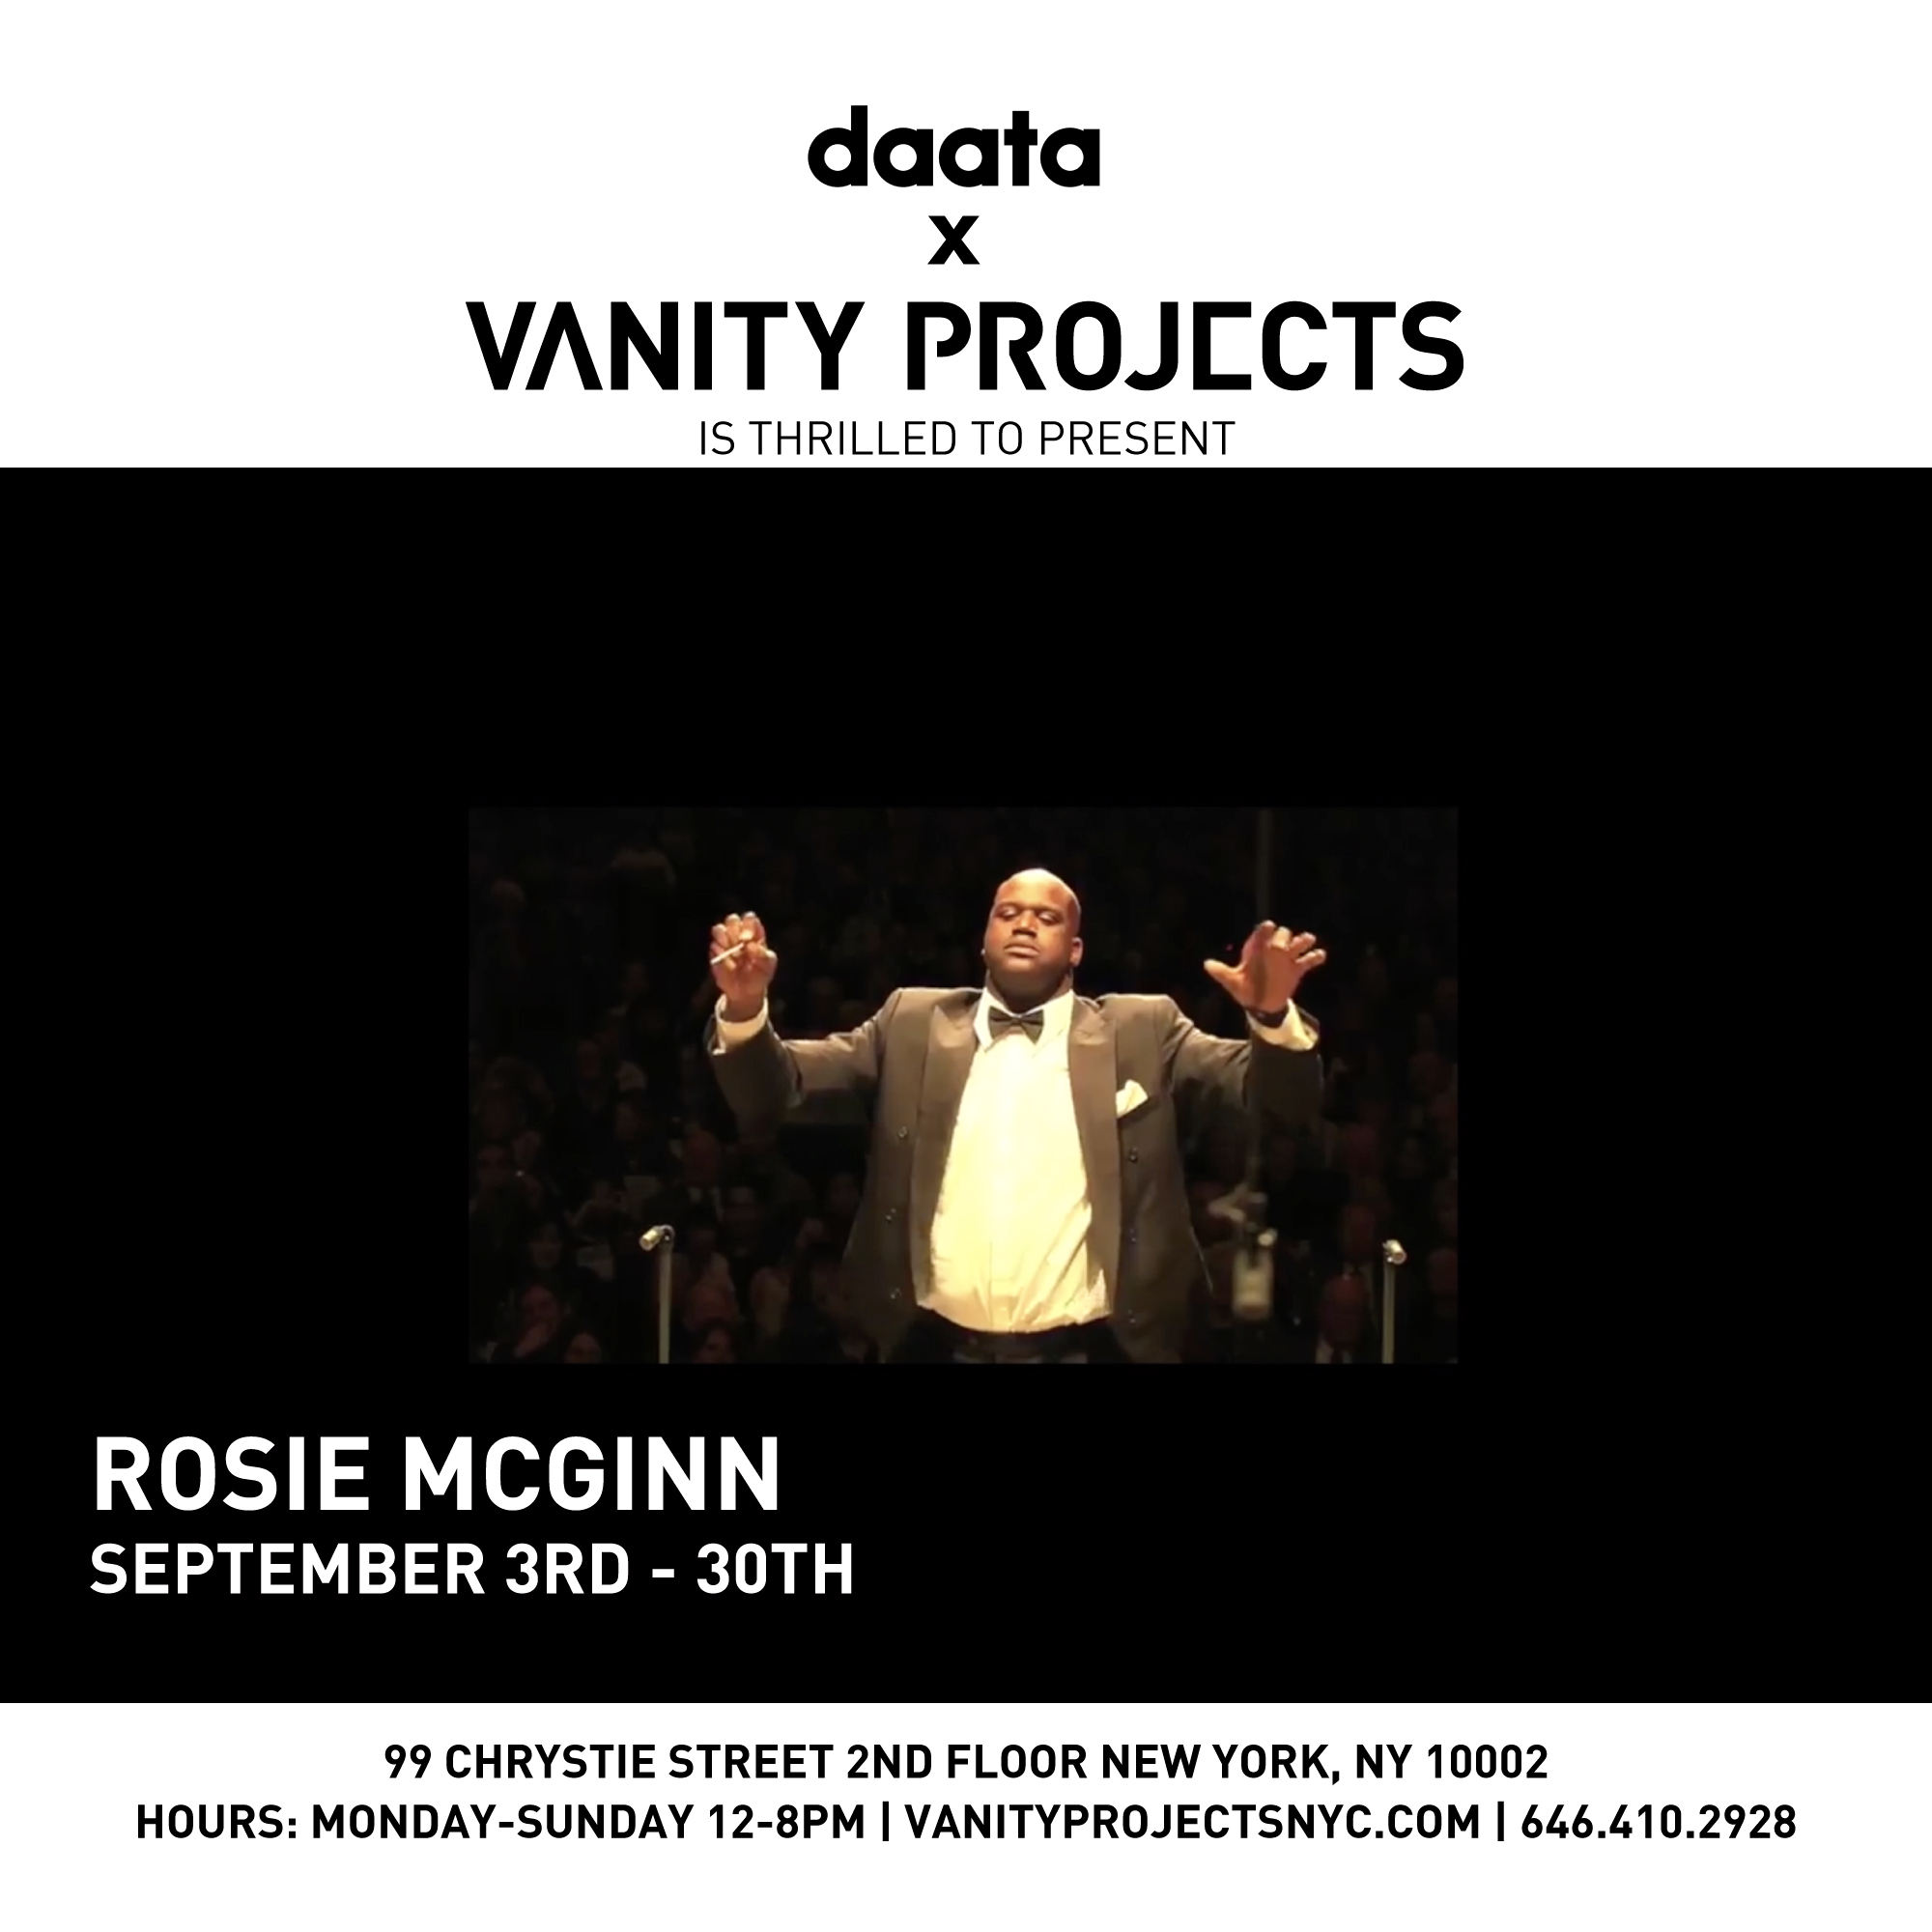 vp_announcements_daata_rosie-mcginn_2.jpg